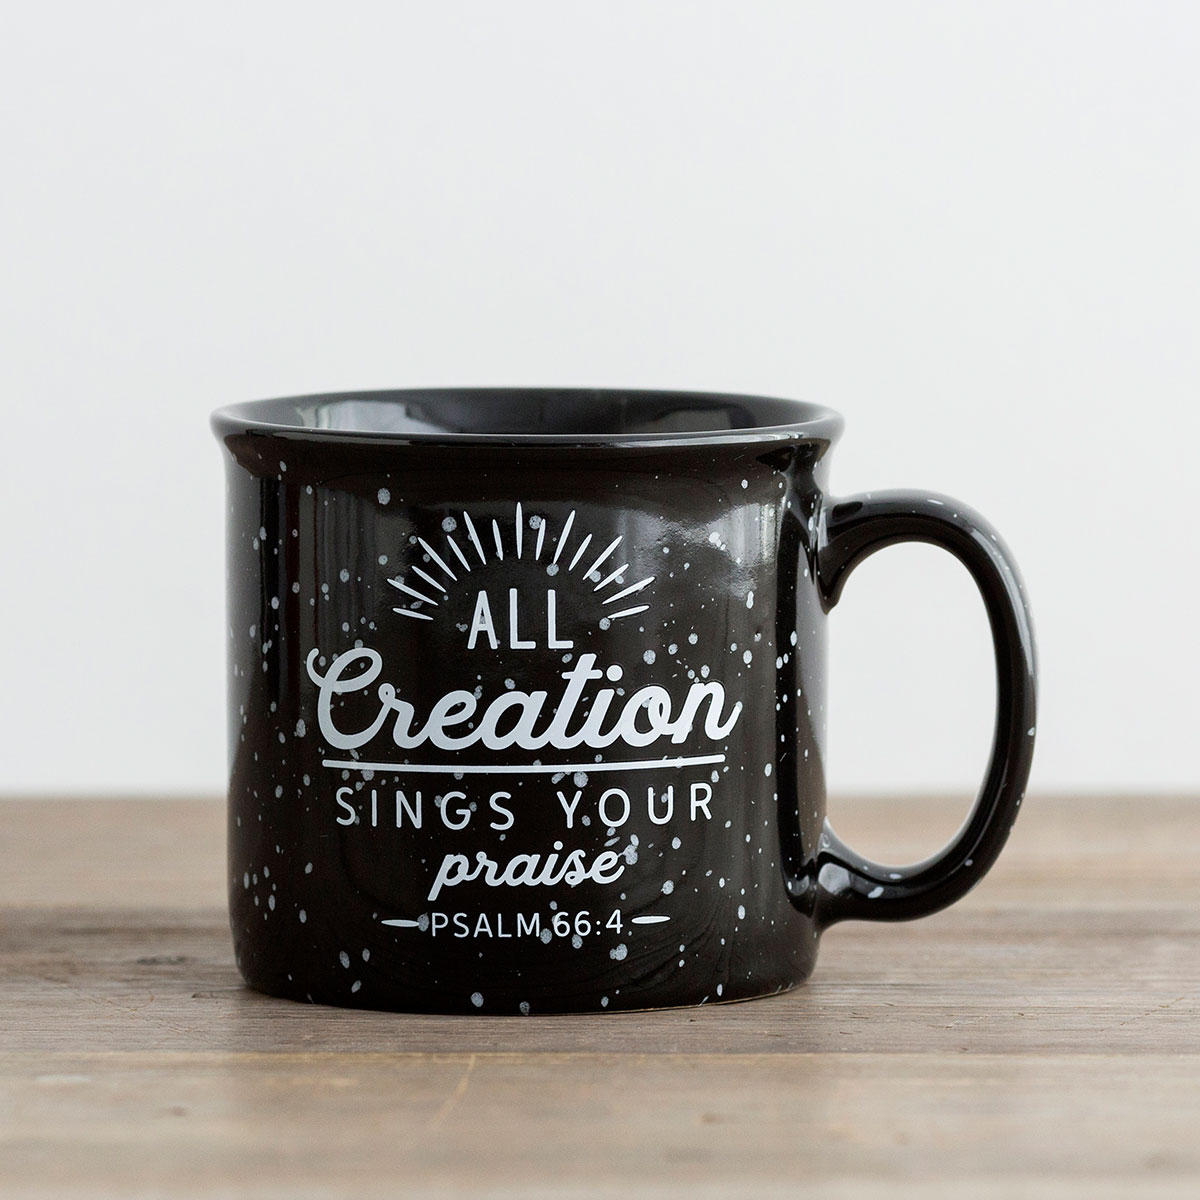 All Creation Sings Your Praise - Ceramic Campfire Mug